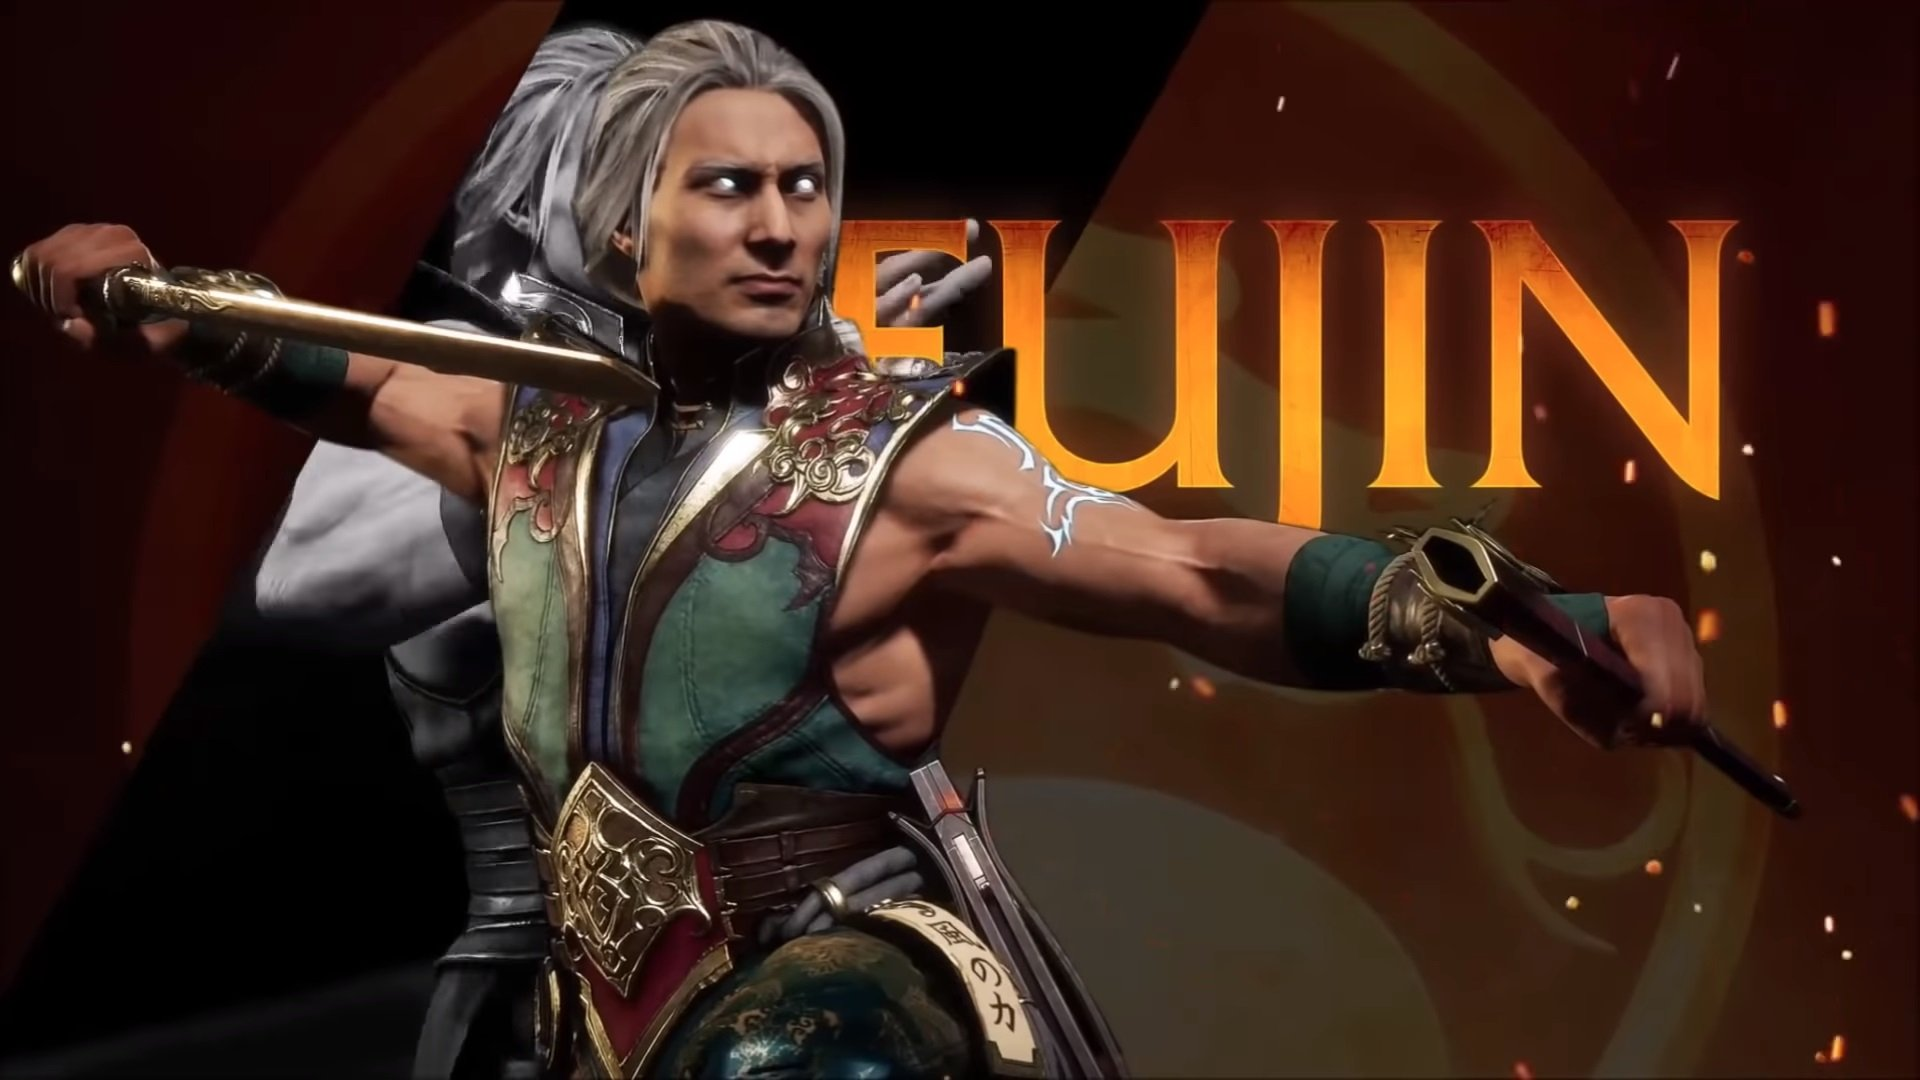 Fujin joining the Mortal Kombat 11 roster